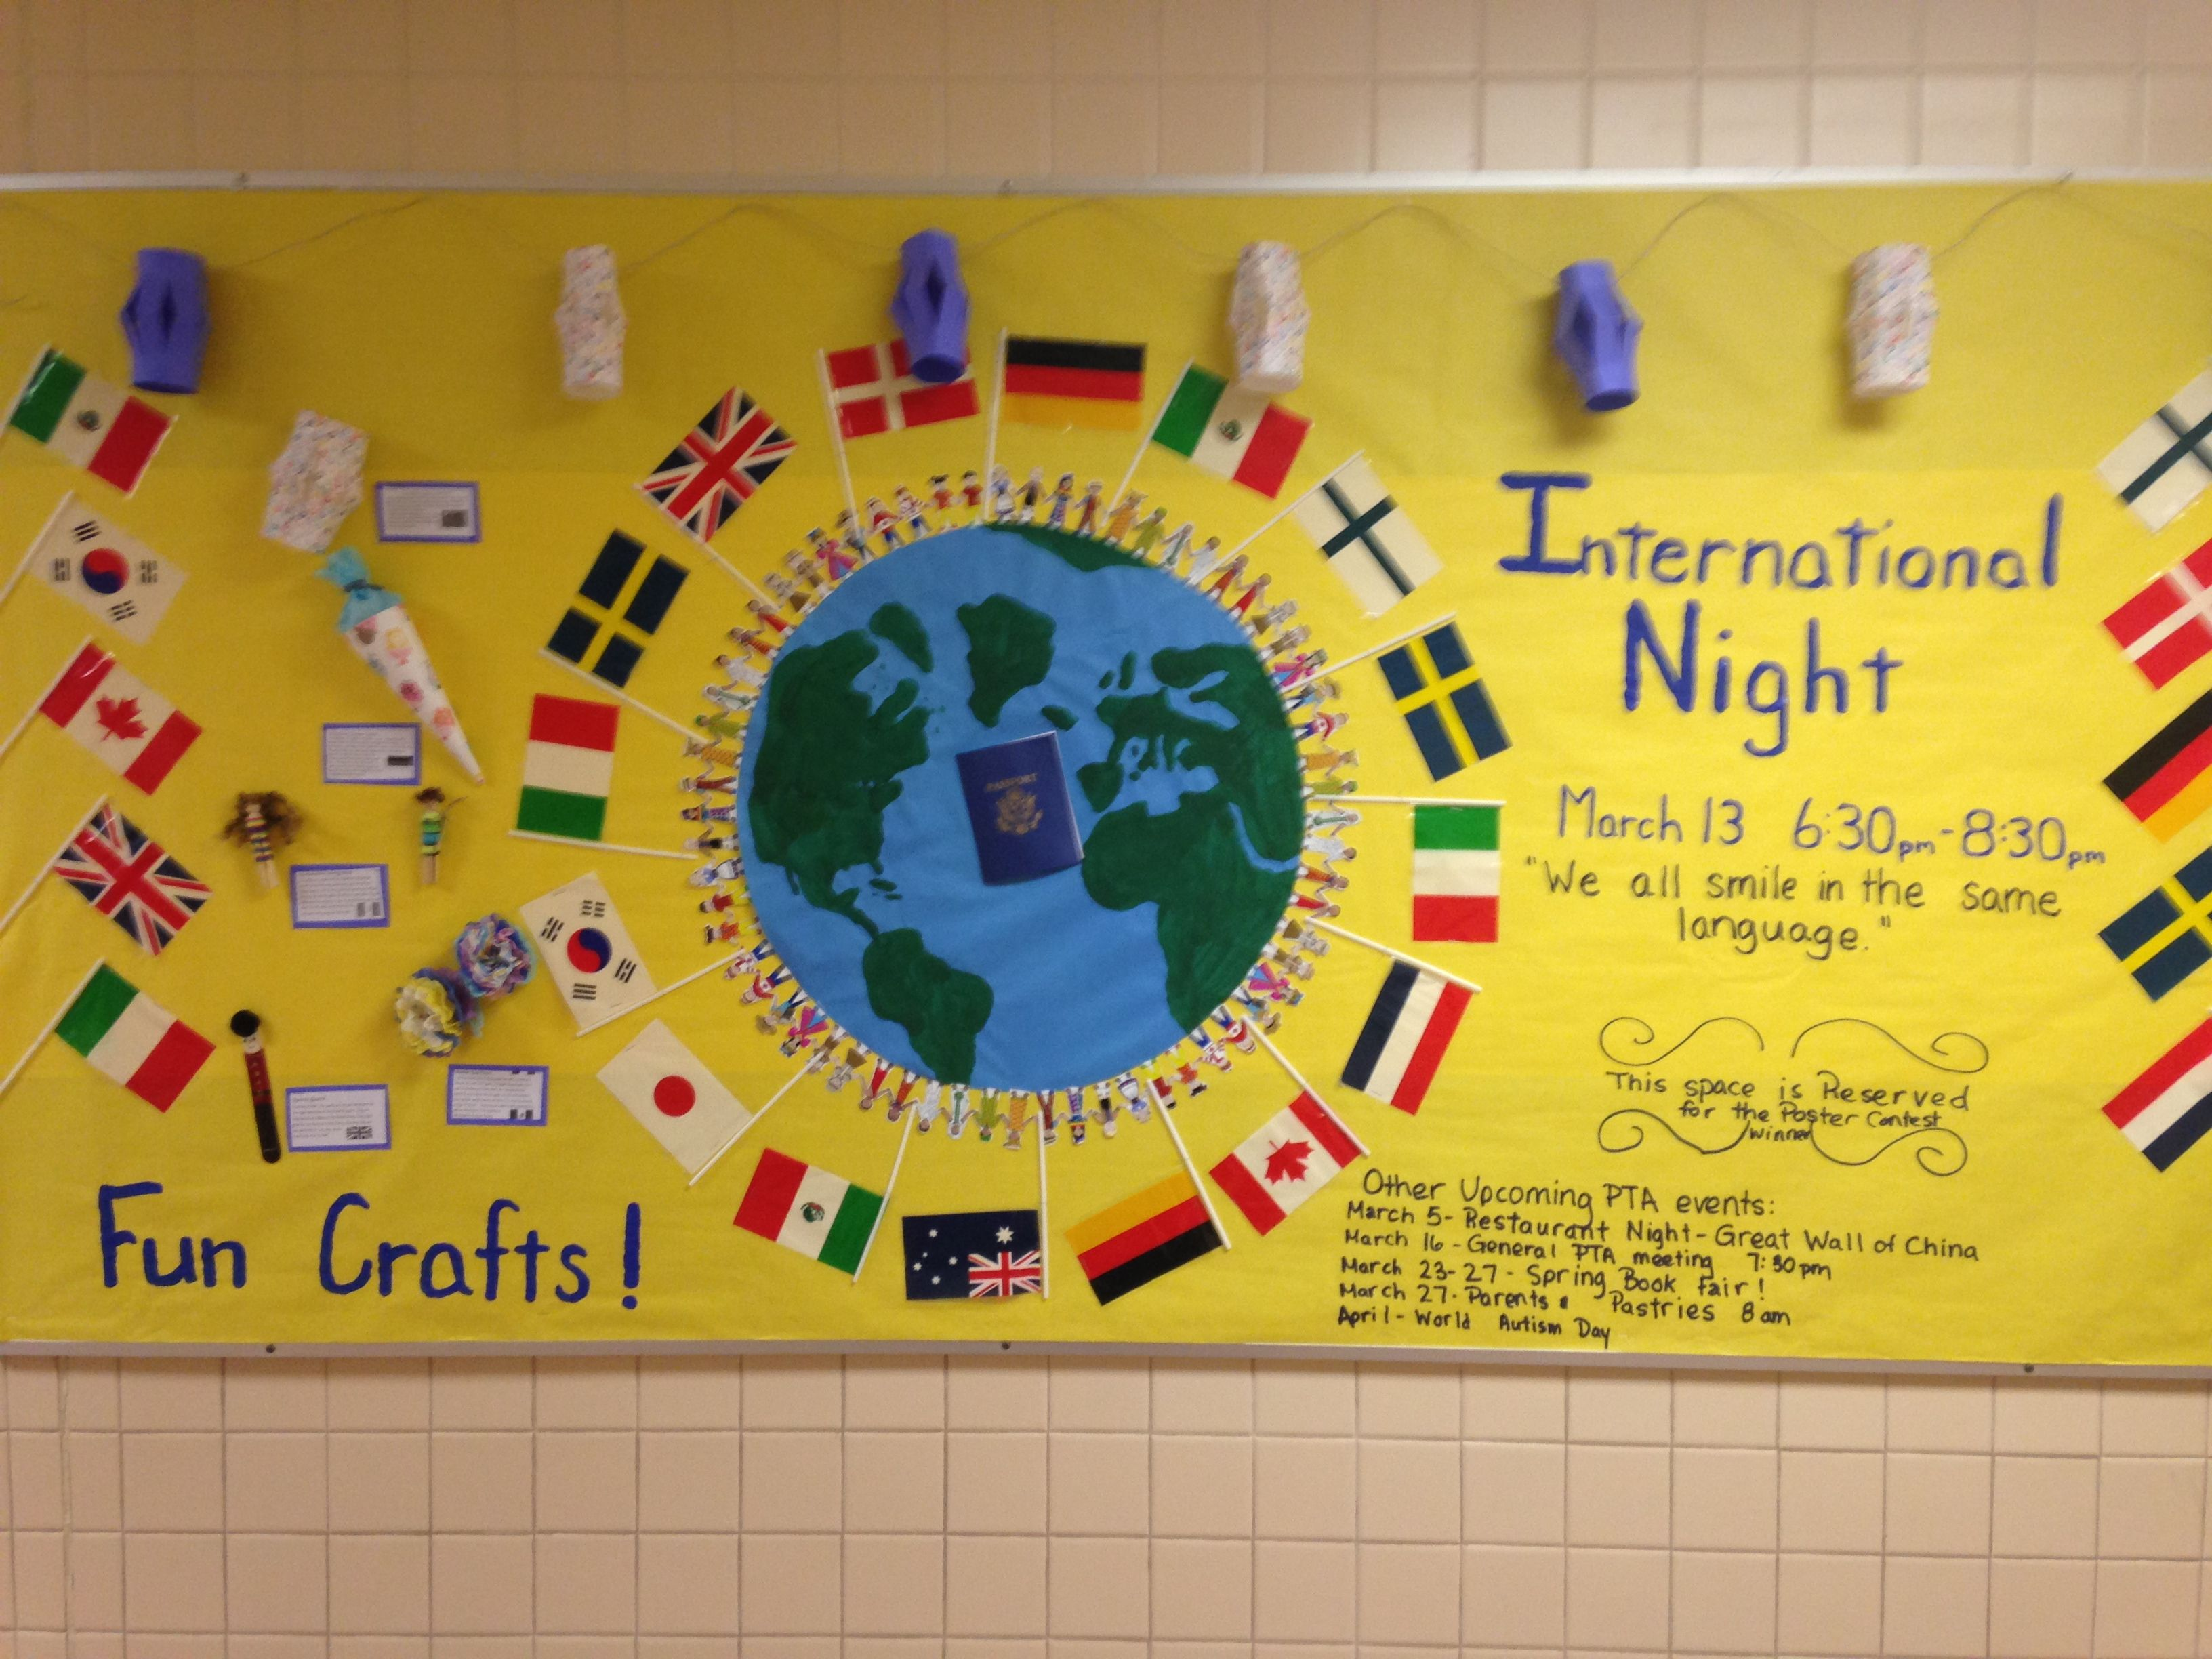 A Great Way To Advertise For Our International Night And